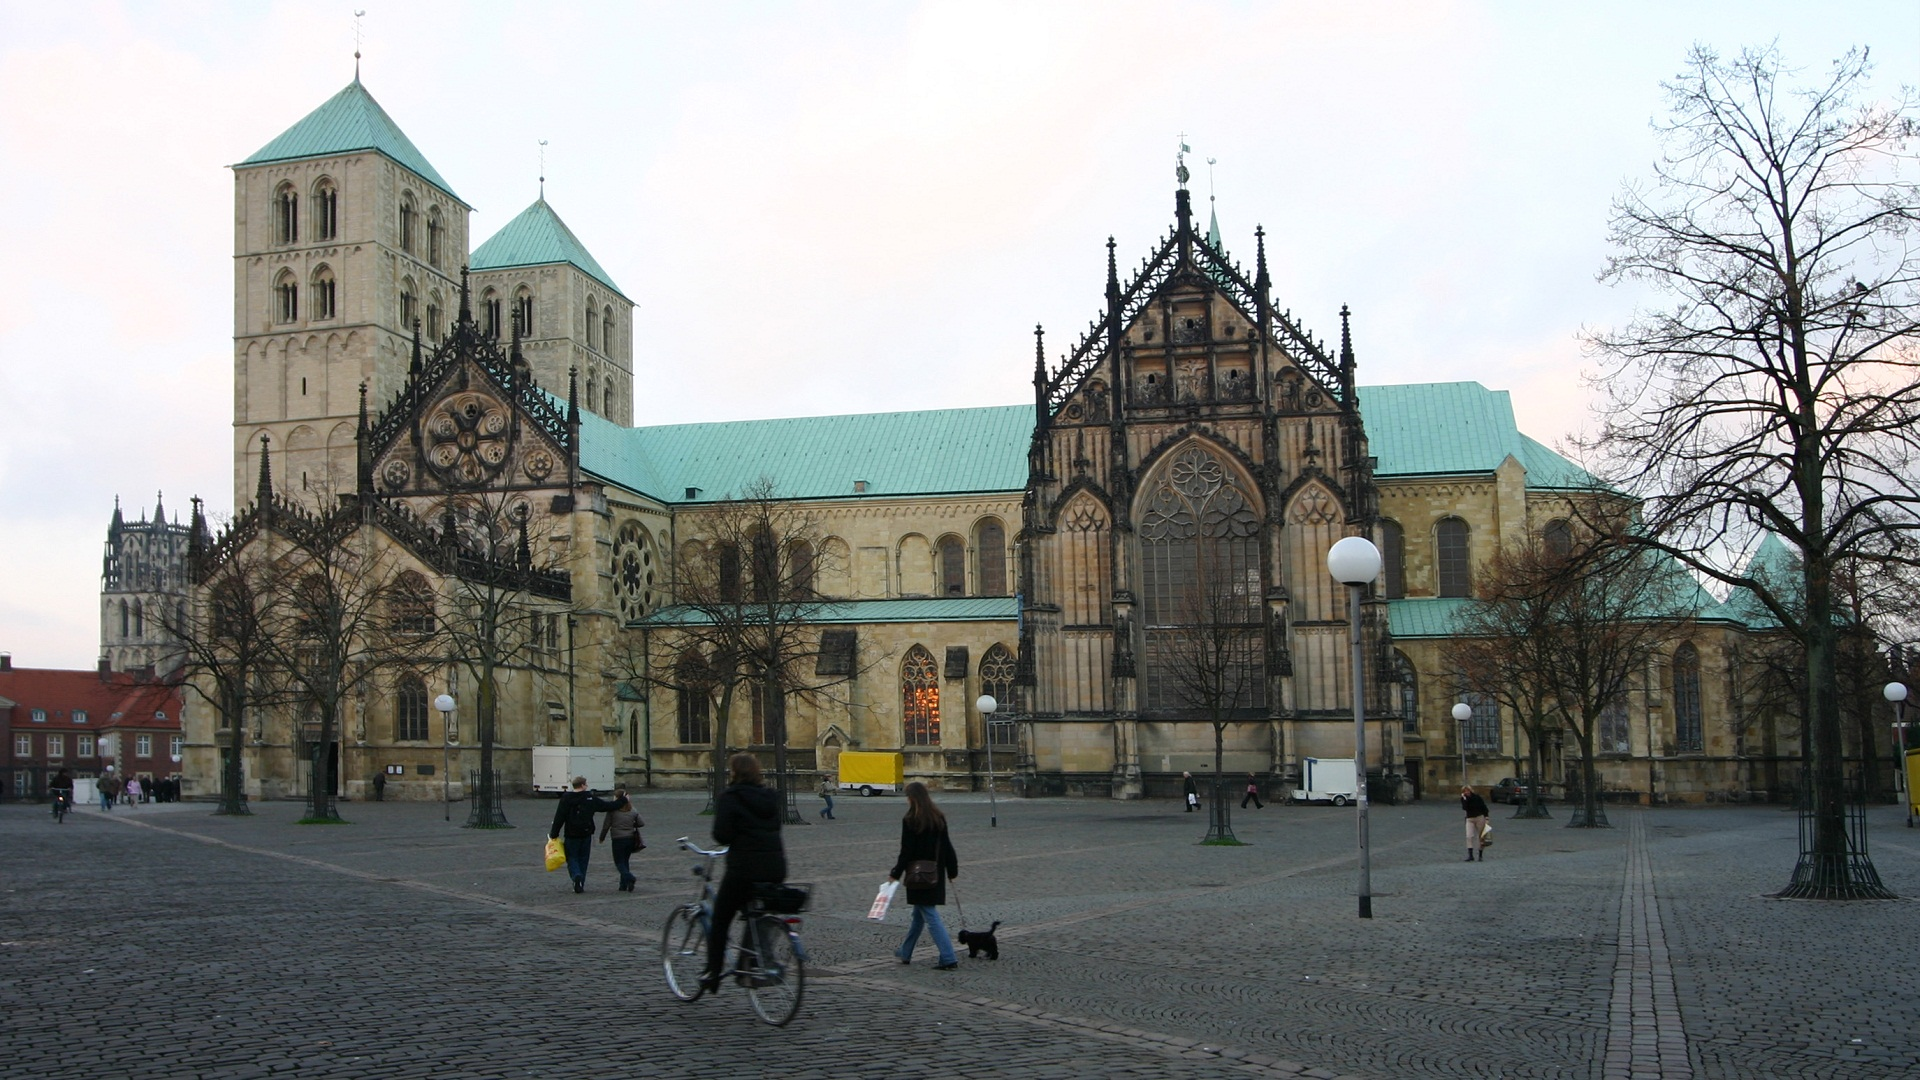 Saint Paulus Dom, Munster, Germany, Panorama